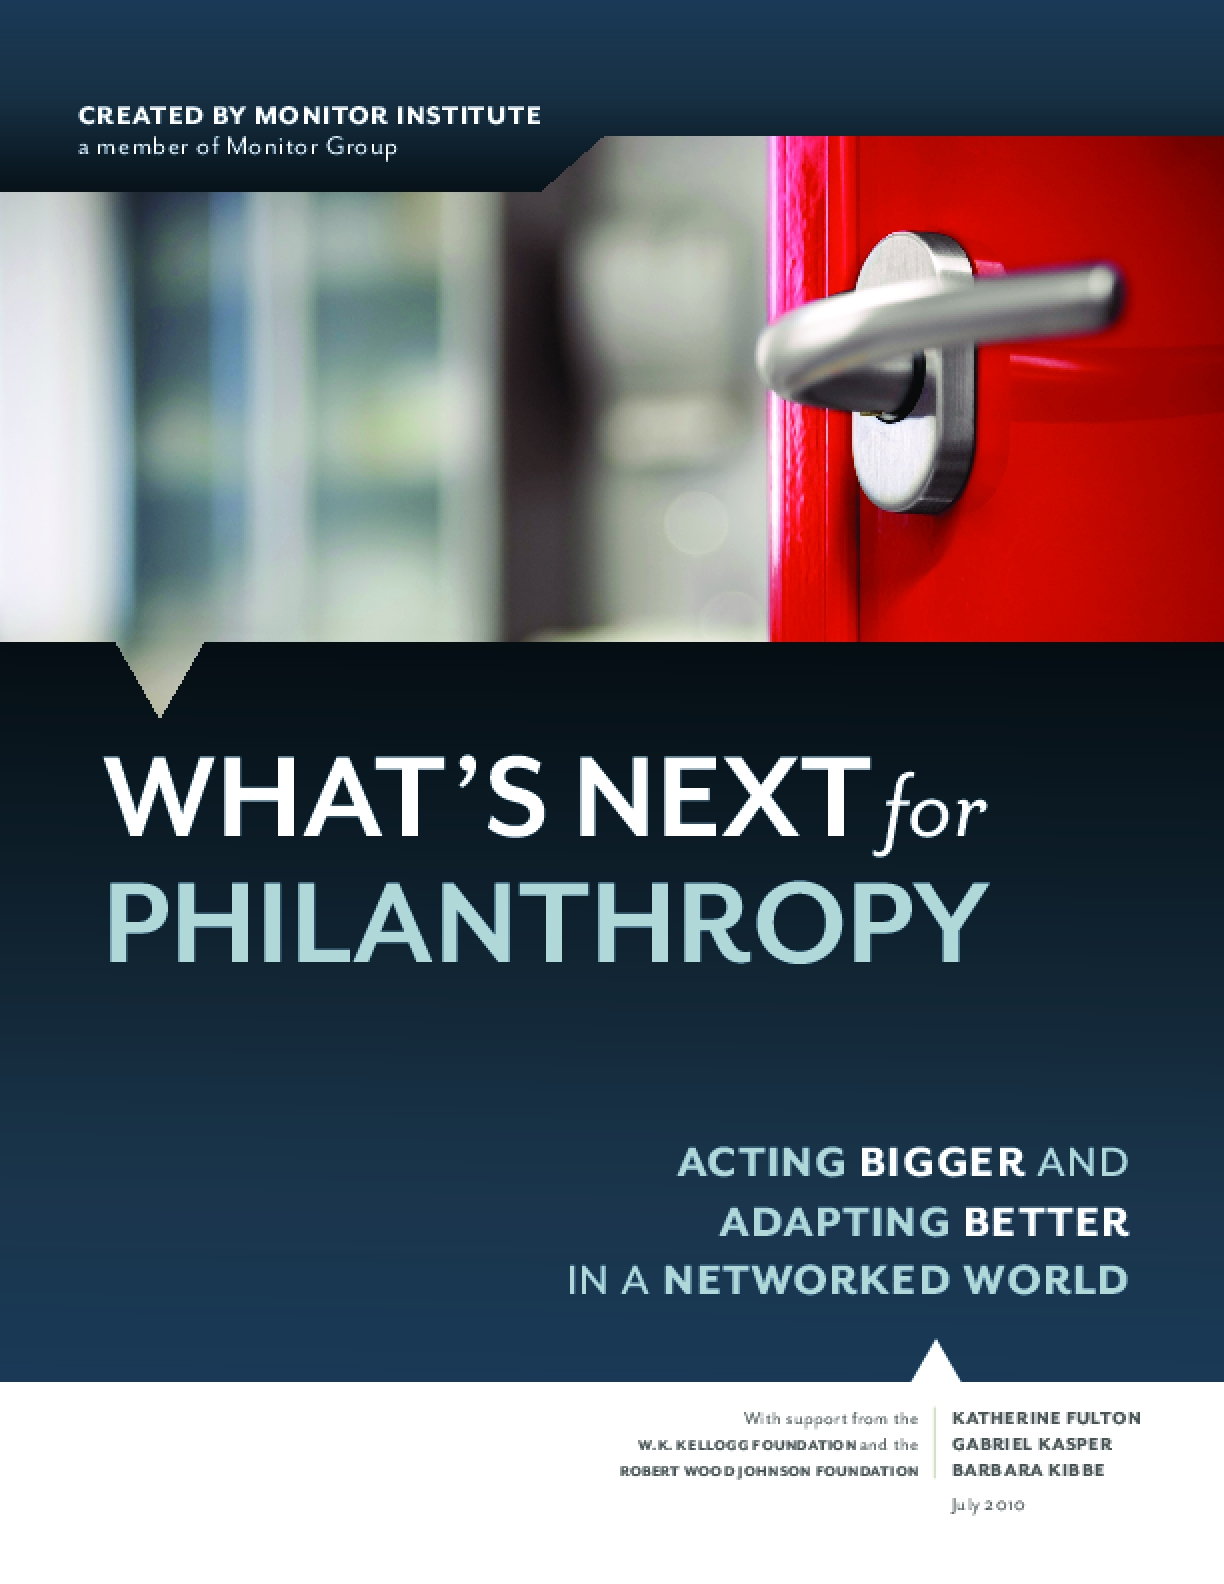 What's Next for Philanthropy: Acting Bigger and Adapting Better in a Networked World